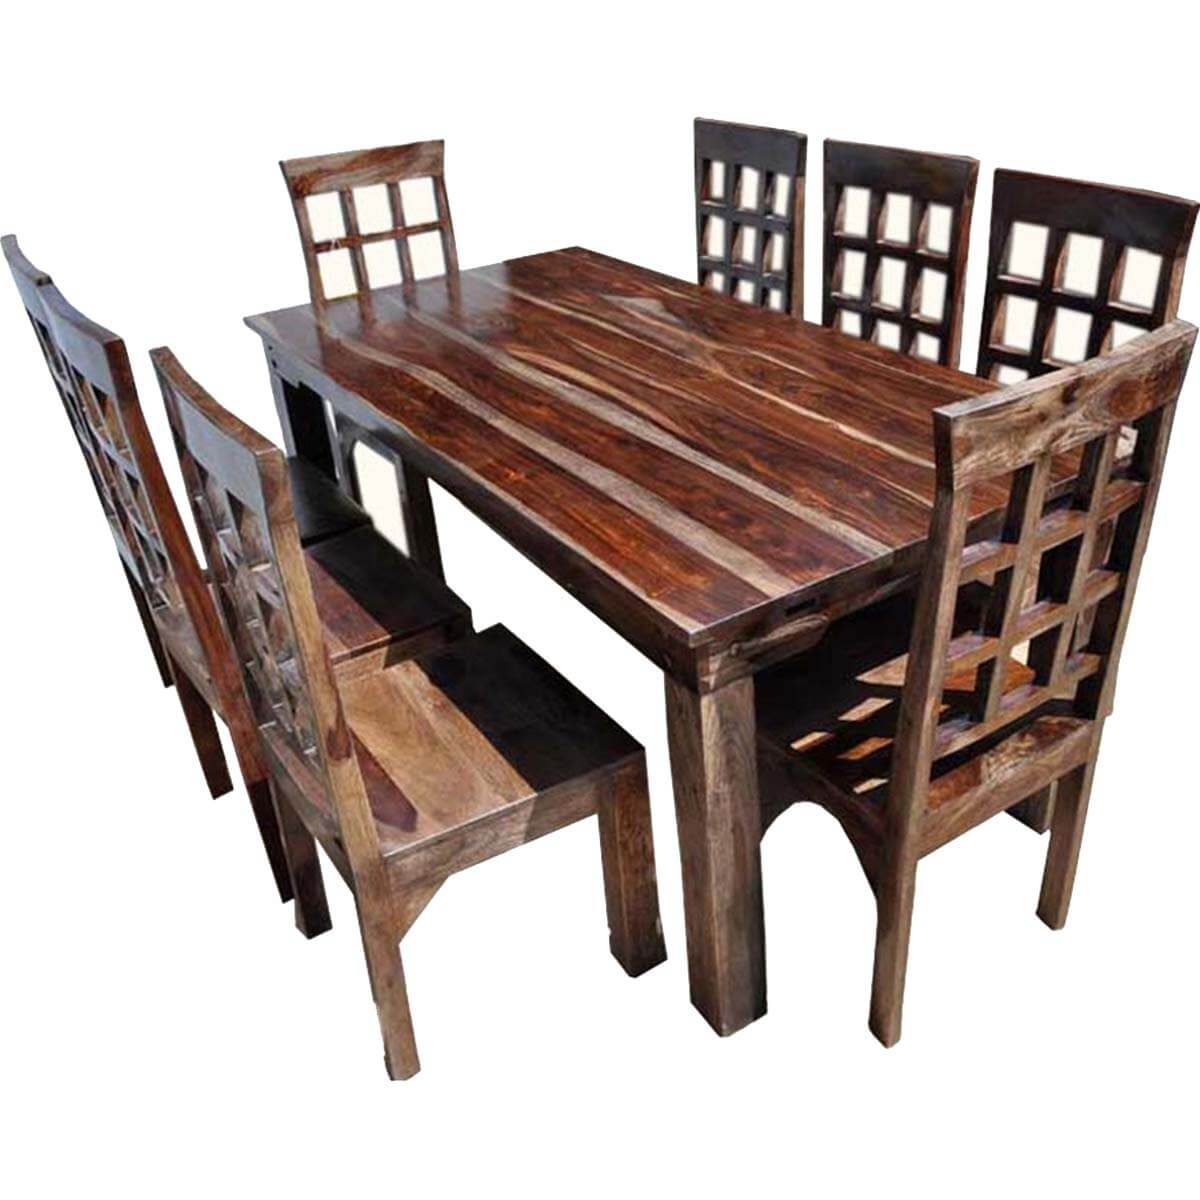 Farmhouse solid wood dining table chairs sideboard set for Solid wood dining table sets